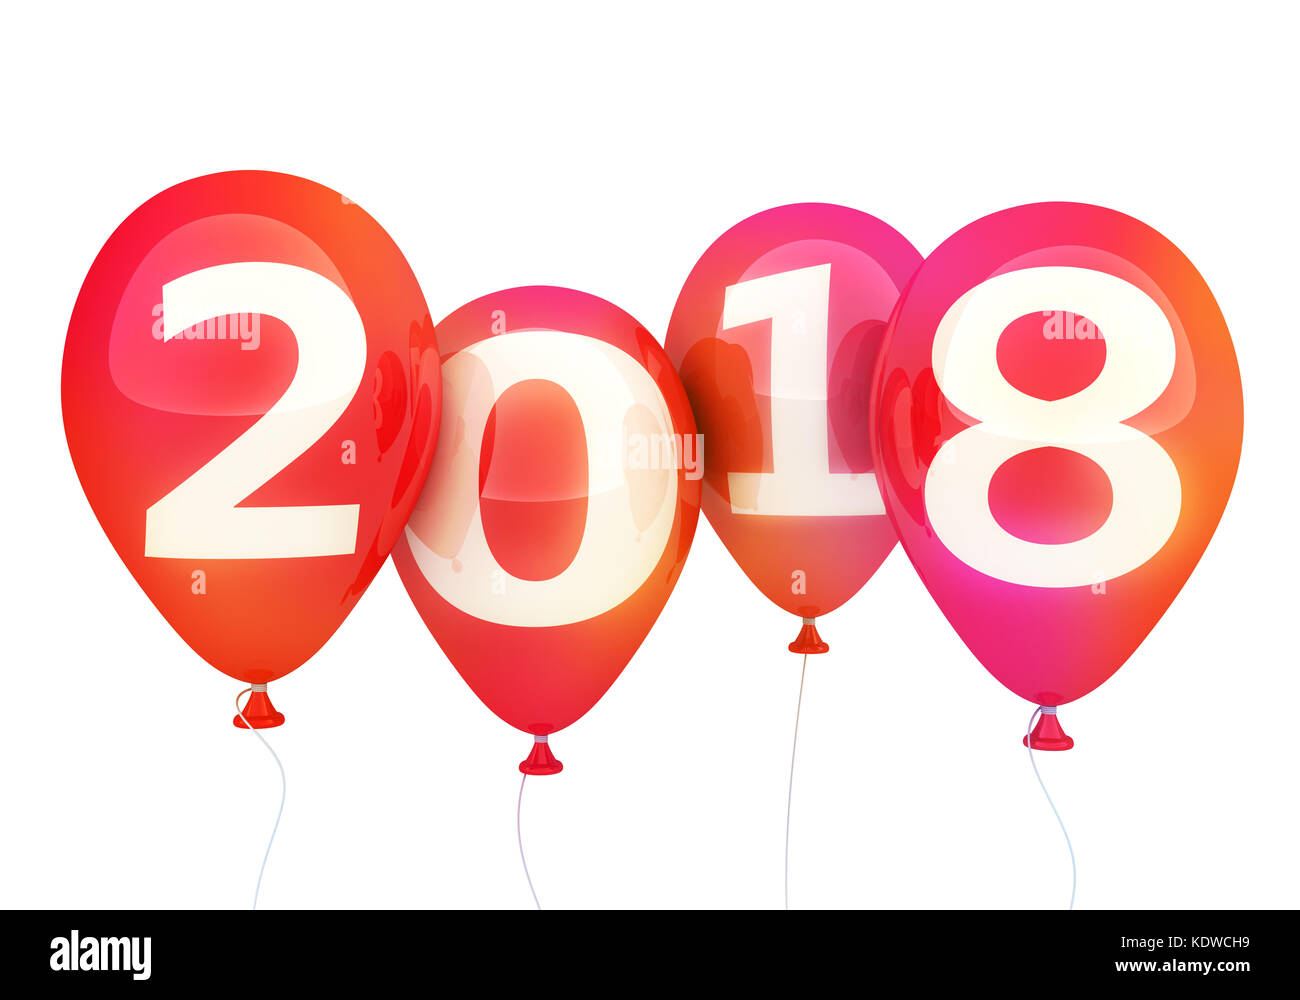 sign new year 2018 on balloon 3d illustration